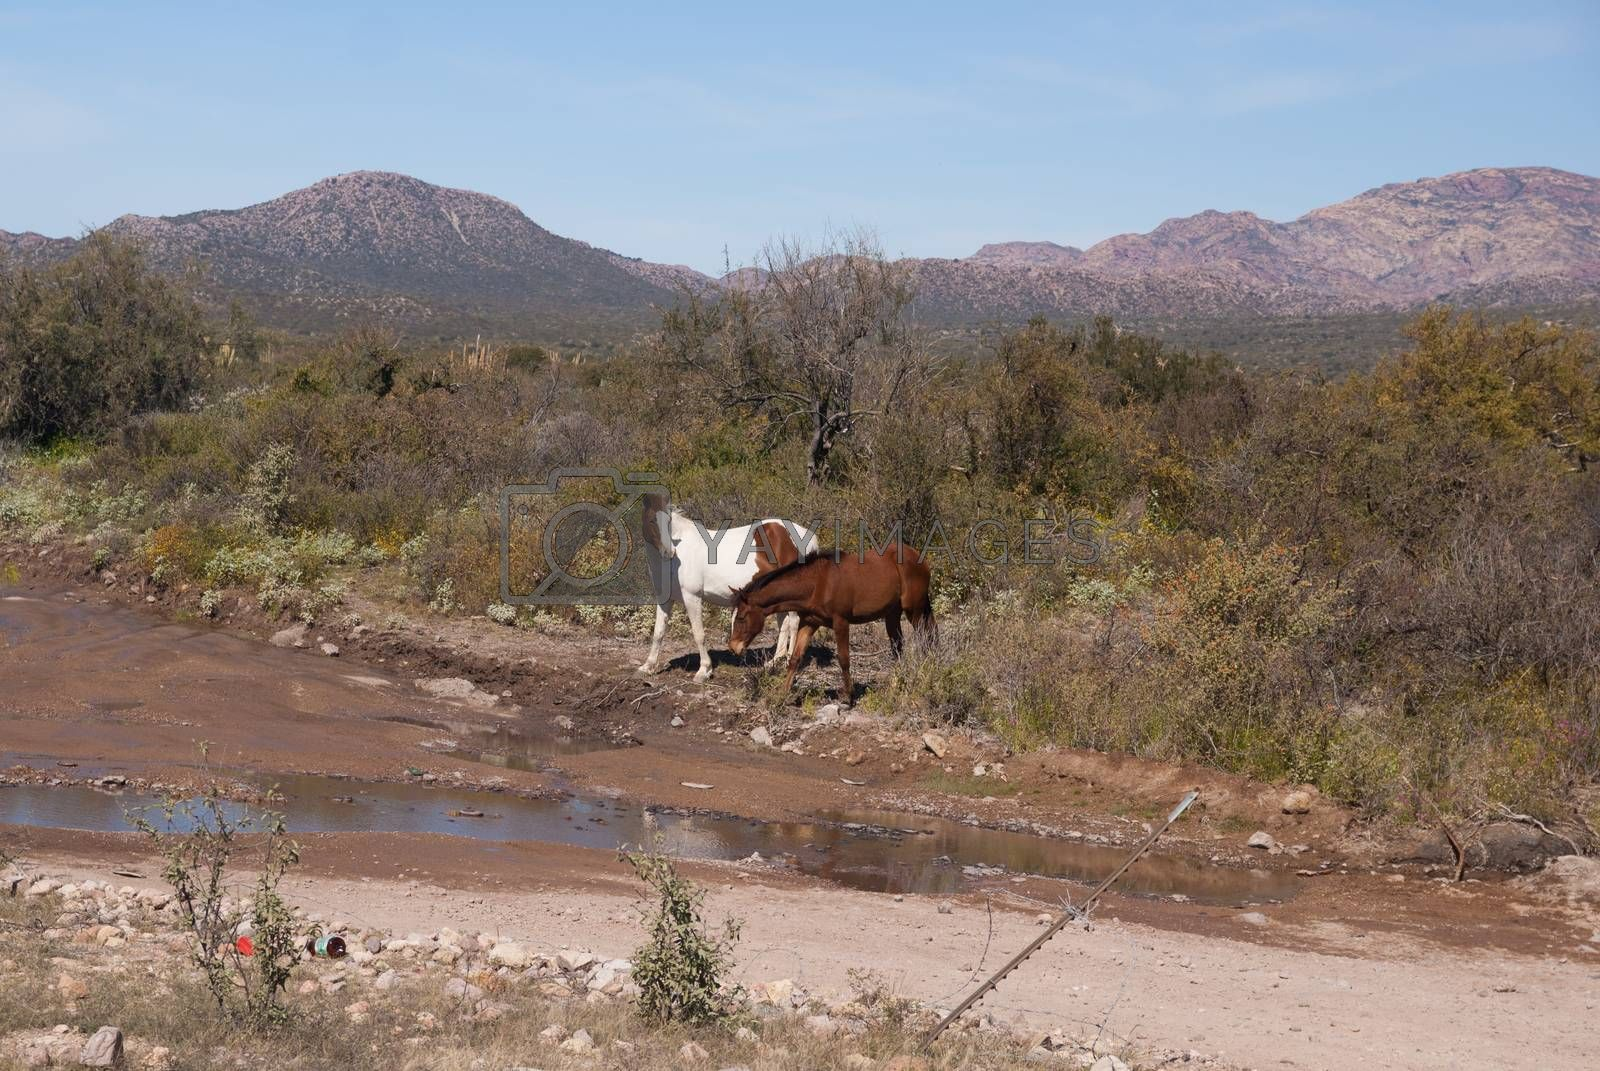 Two wild horses in Sonora Desert by emattil